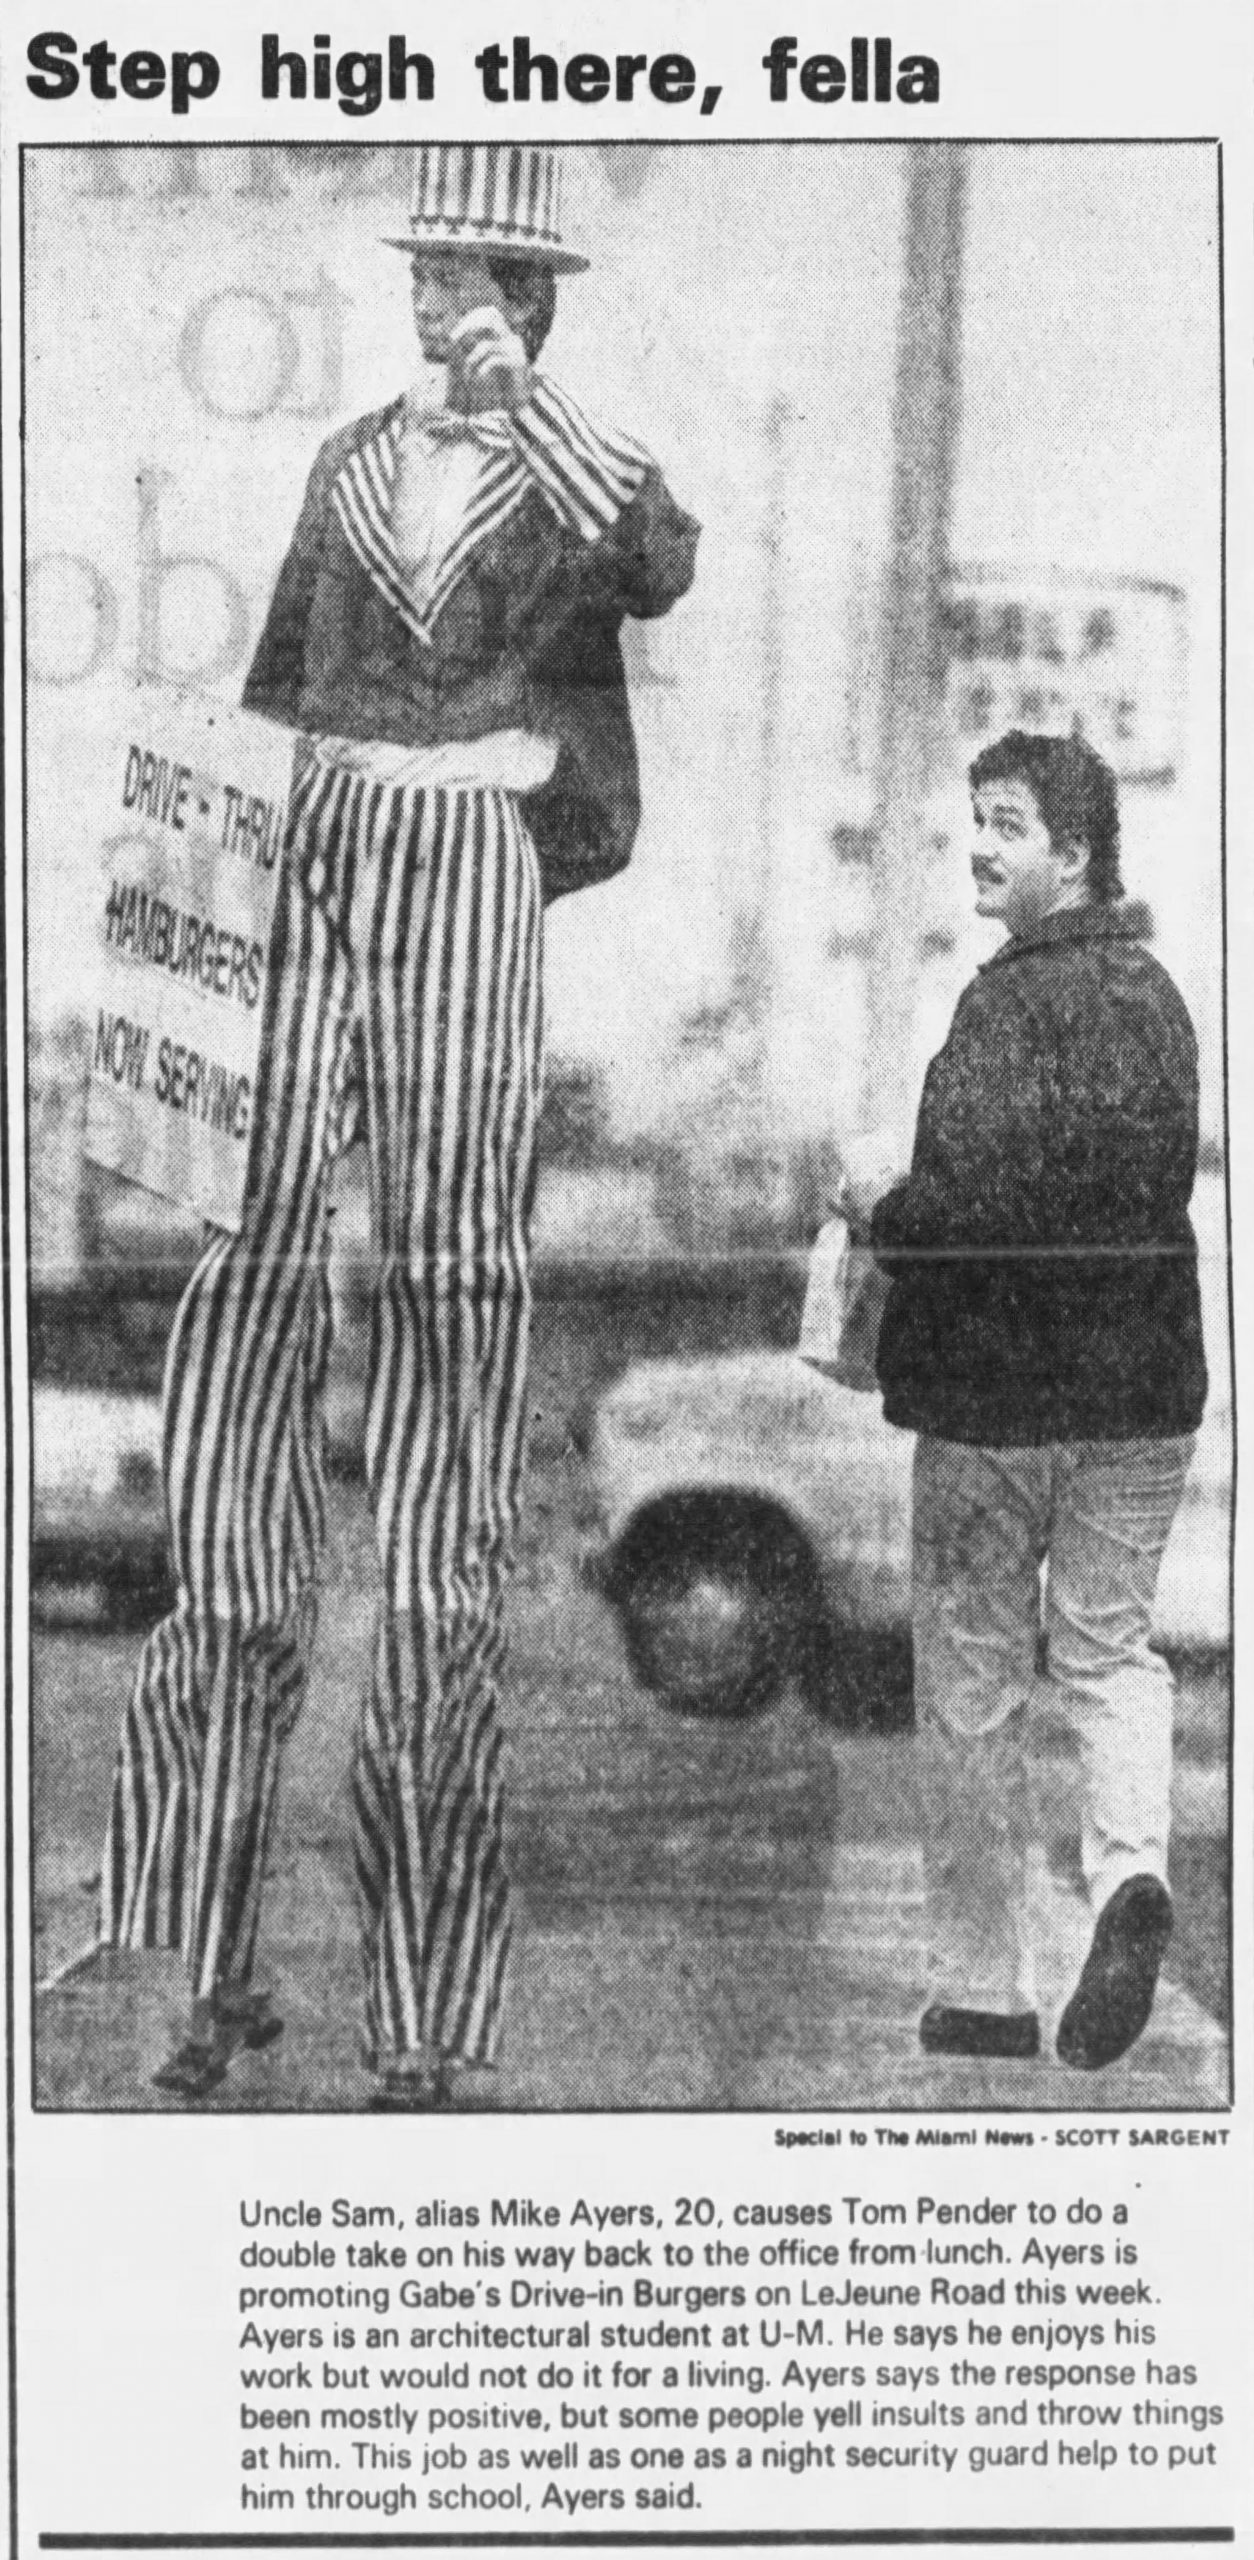 GABE's in The Miami News January 10, 1986